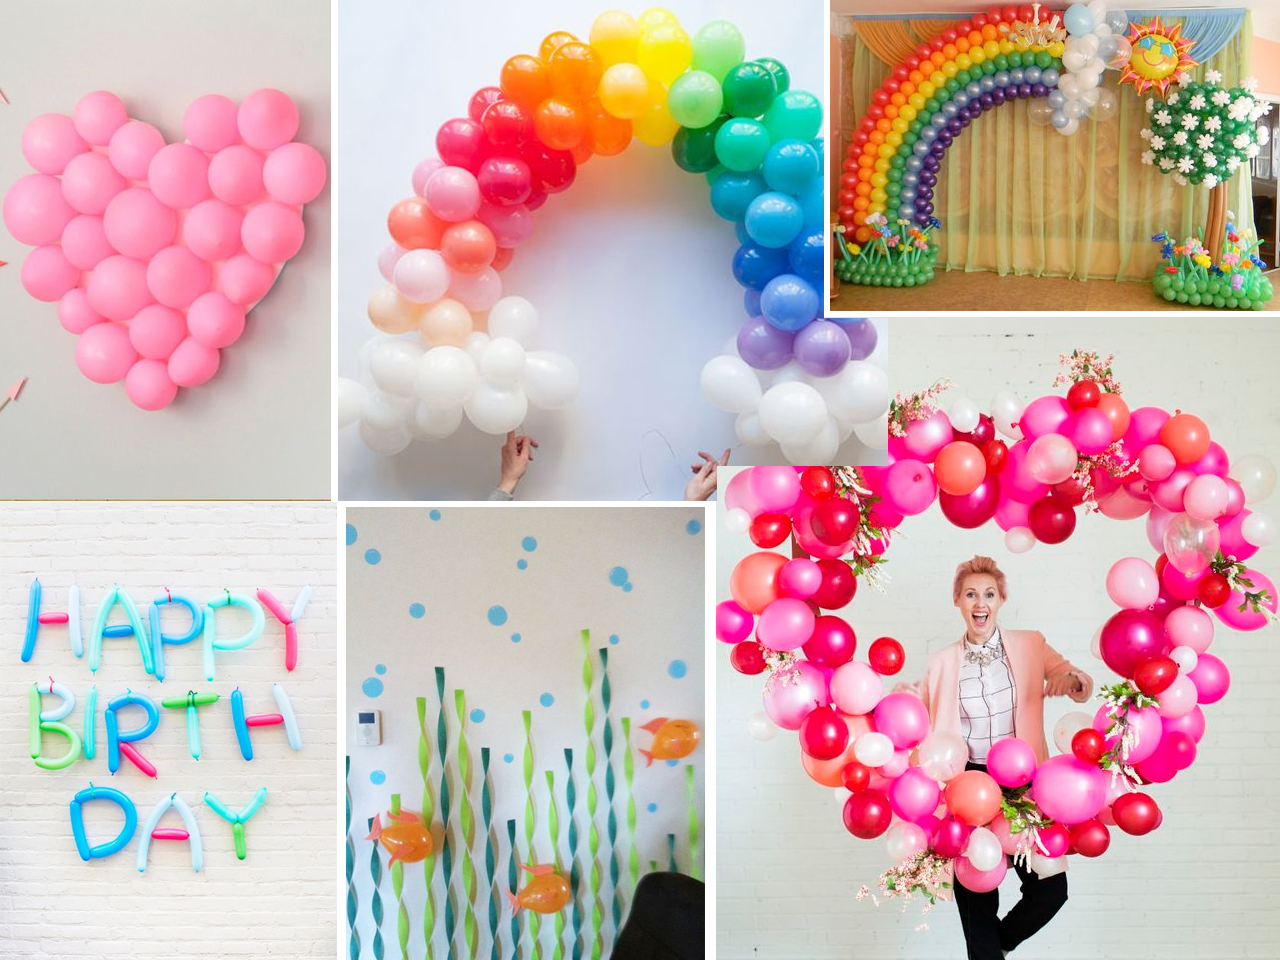 Descubre c mo decorar con globos con estas fant sticas ideas for Paginas de ideas de decoracion